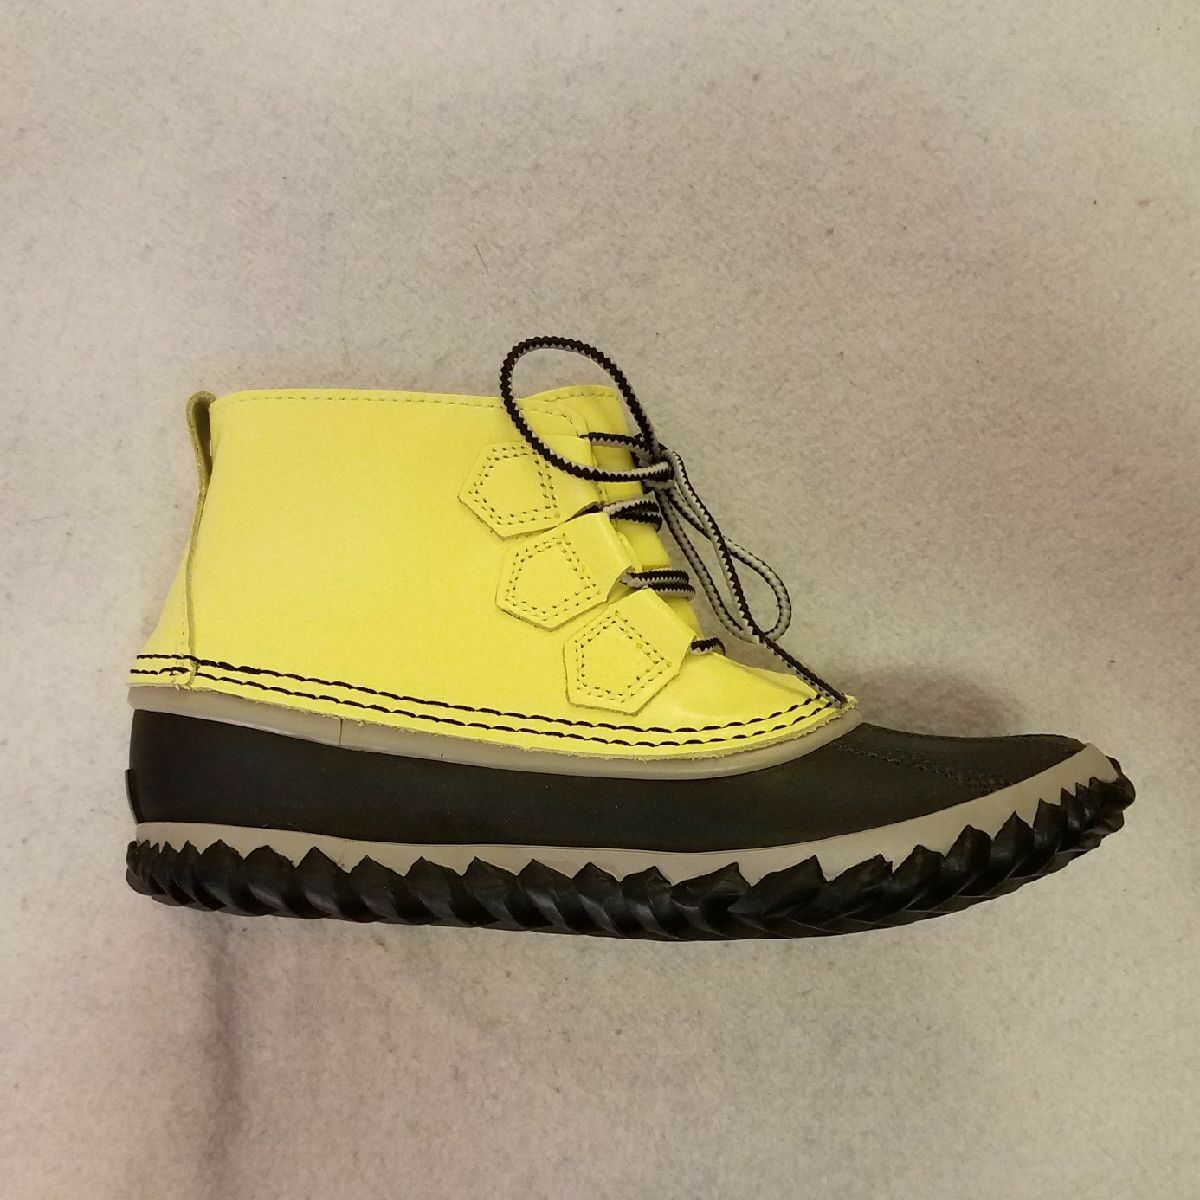 Sorel Damenschuhe Rain Stiefel 6 Yellow Out N About New Zest Dove New About in Box #NL2511-731 848418